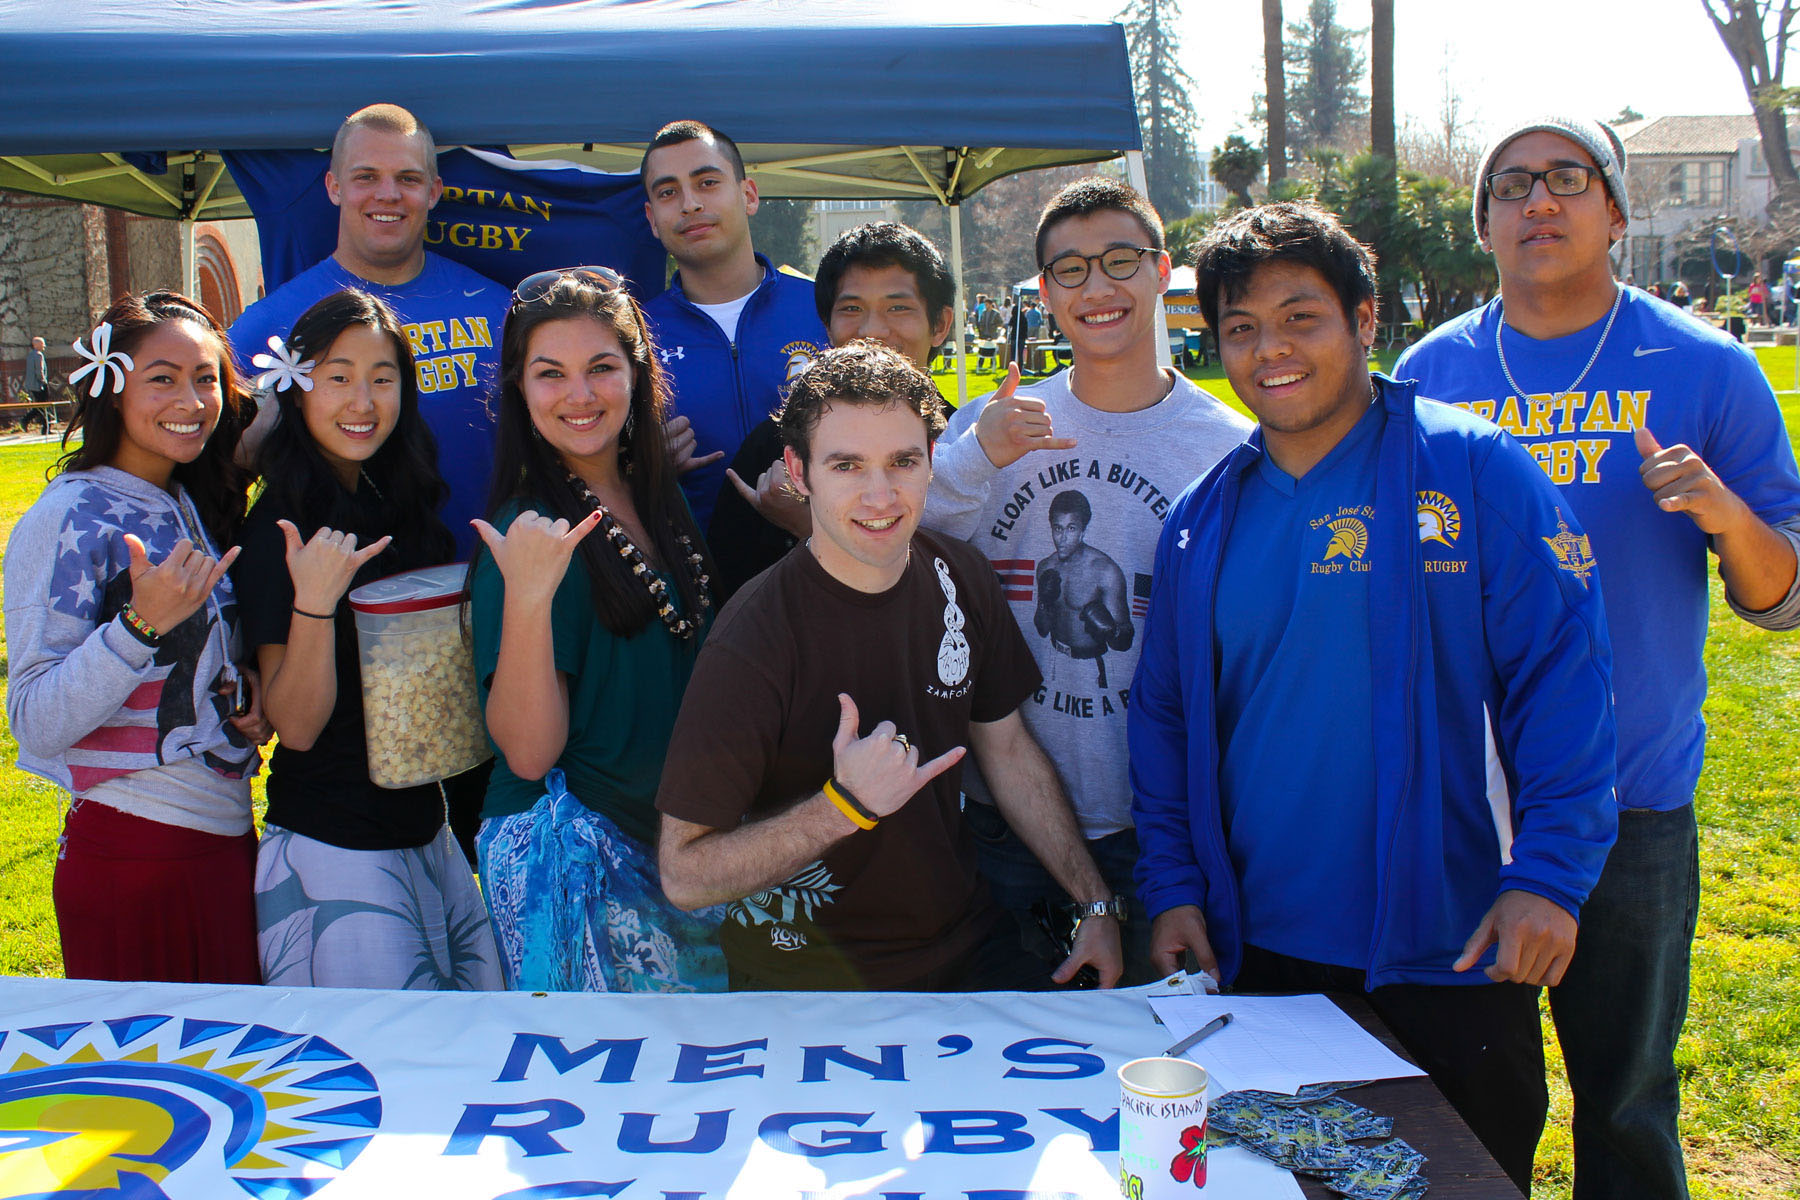 Student Organizations, Men's Rugby Club.